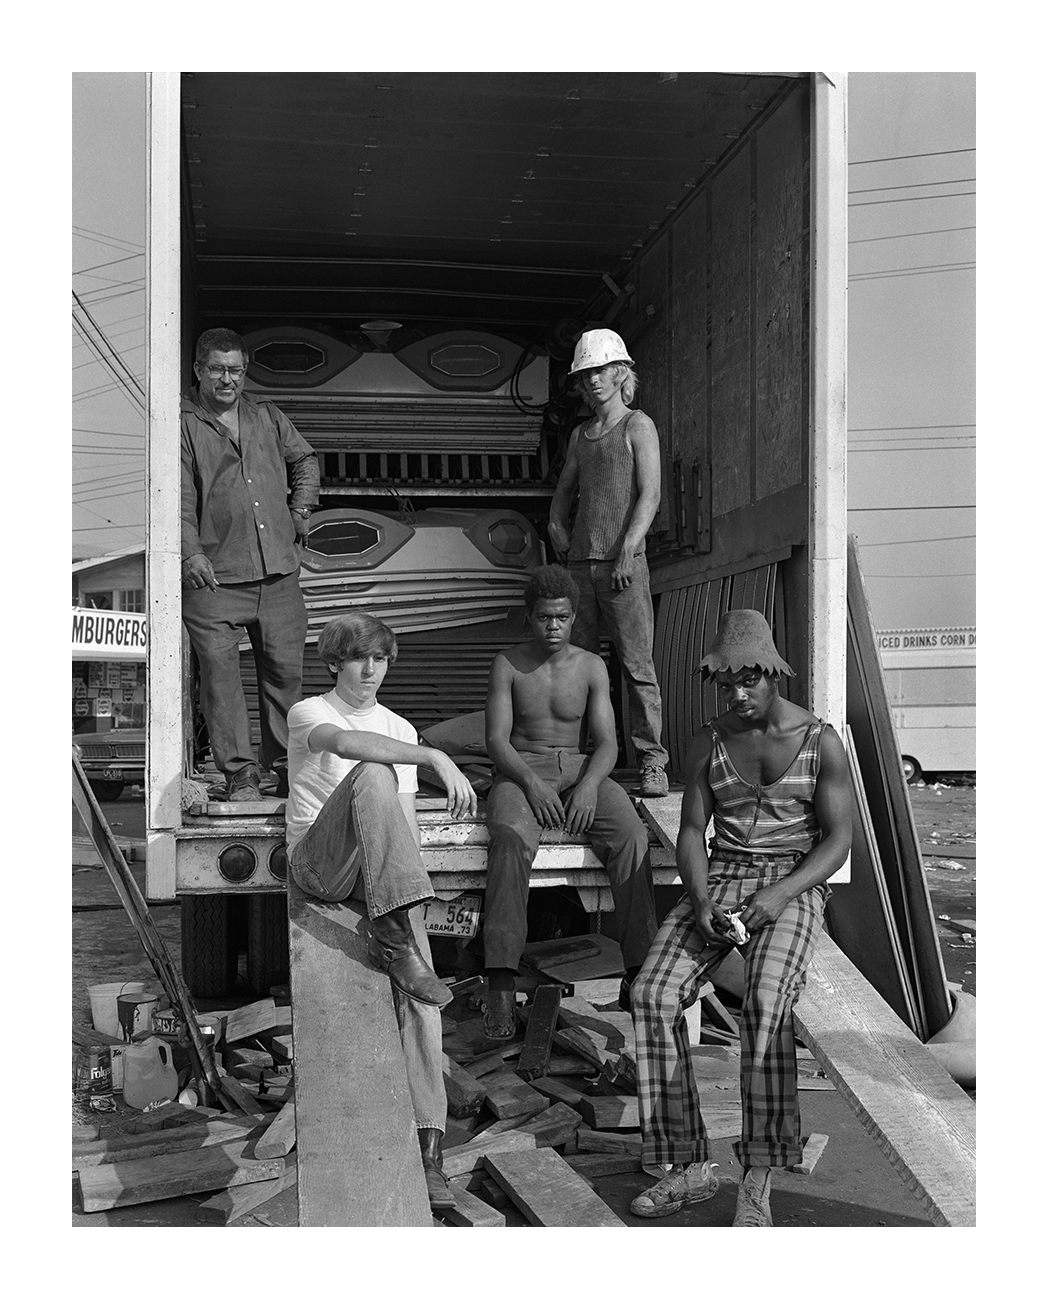 Carney Workers, Detroit, 4 Sept. 1973